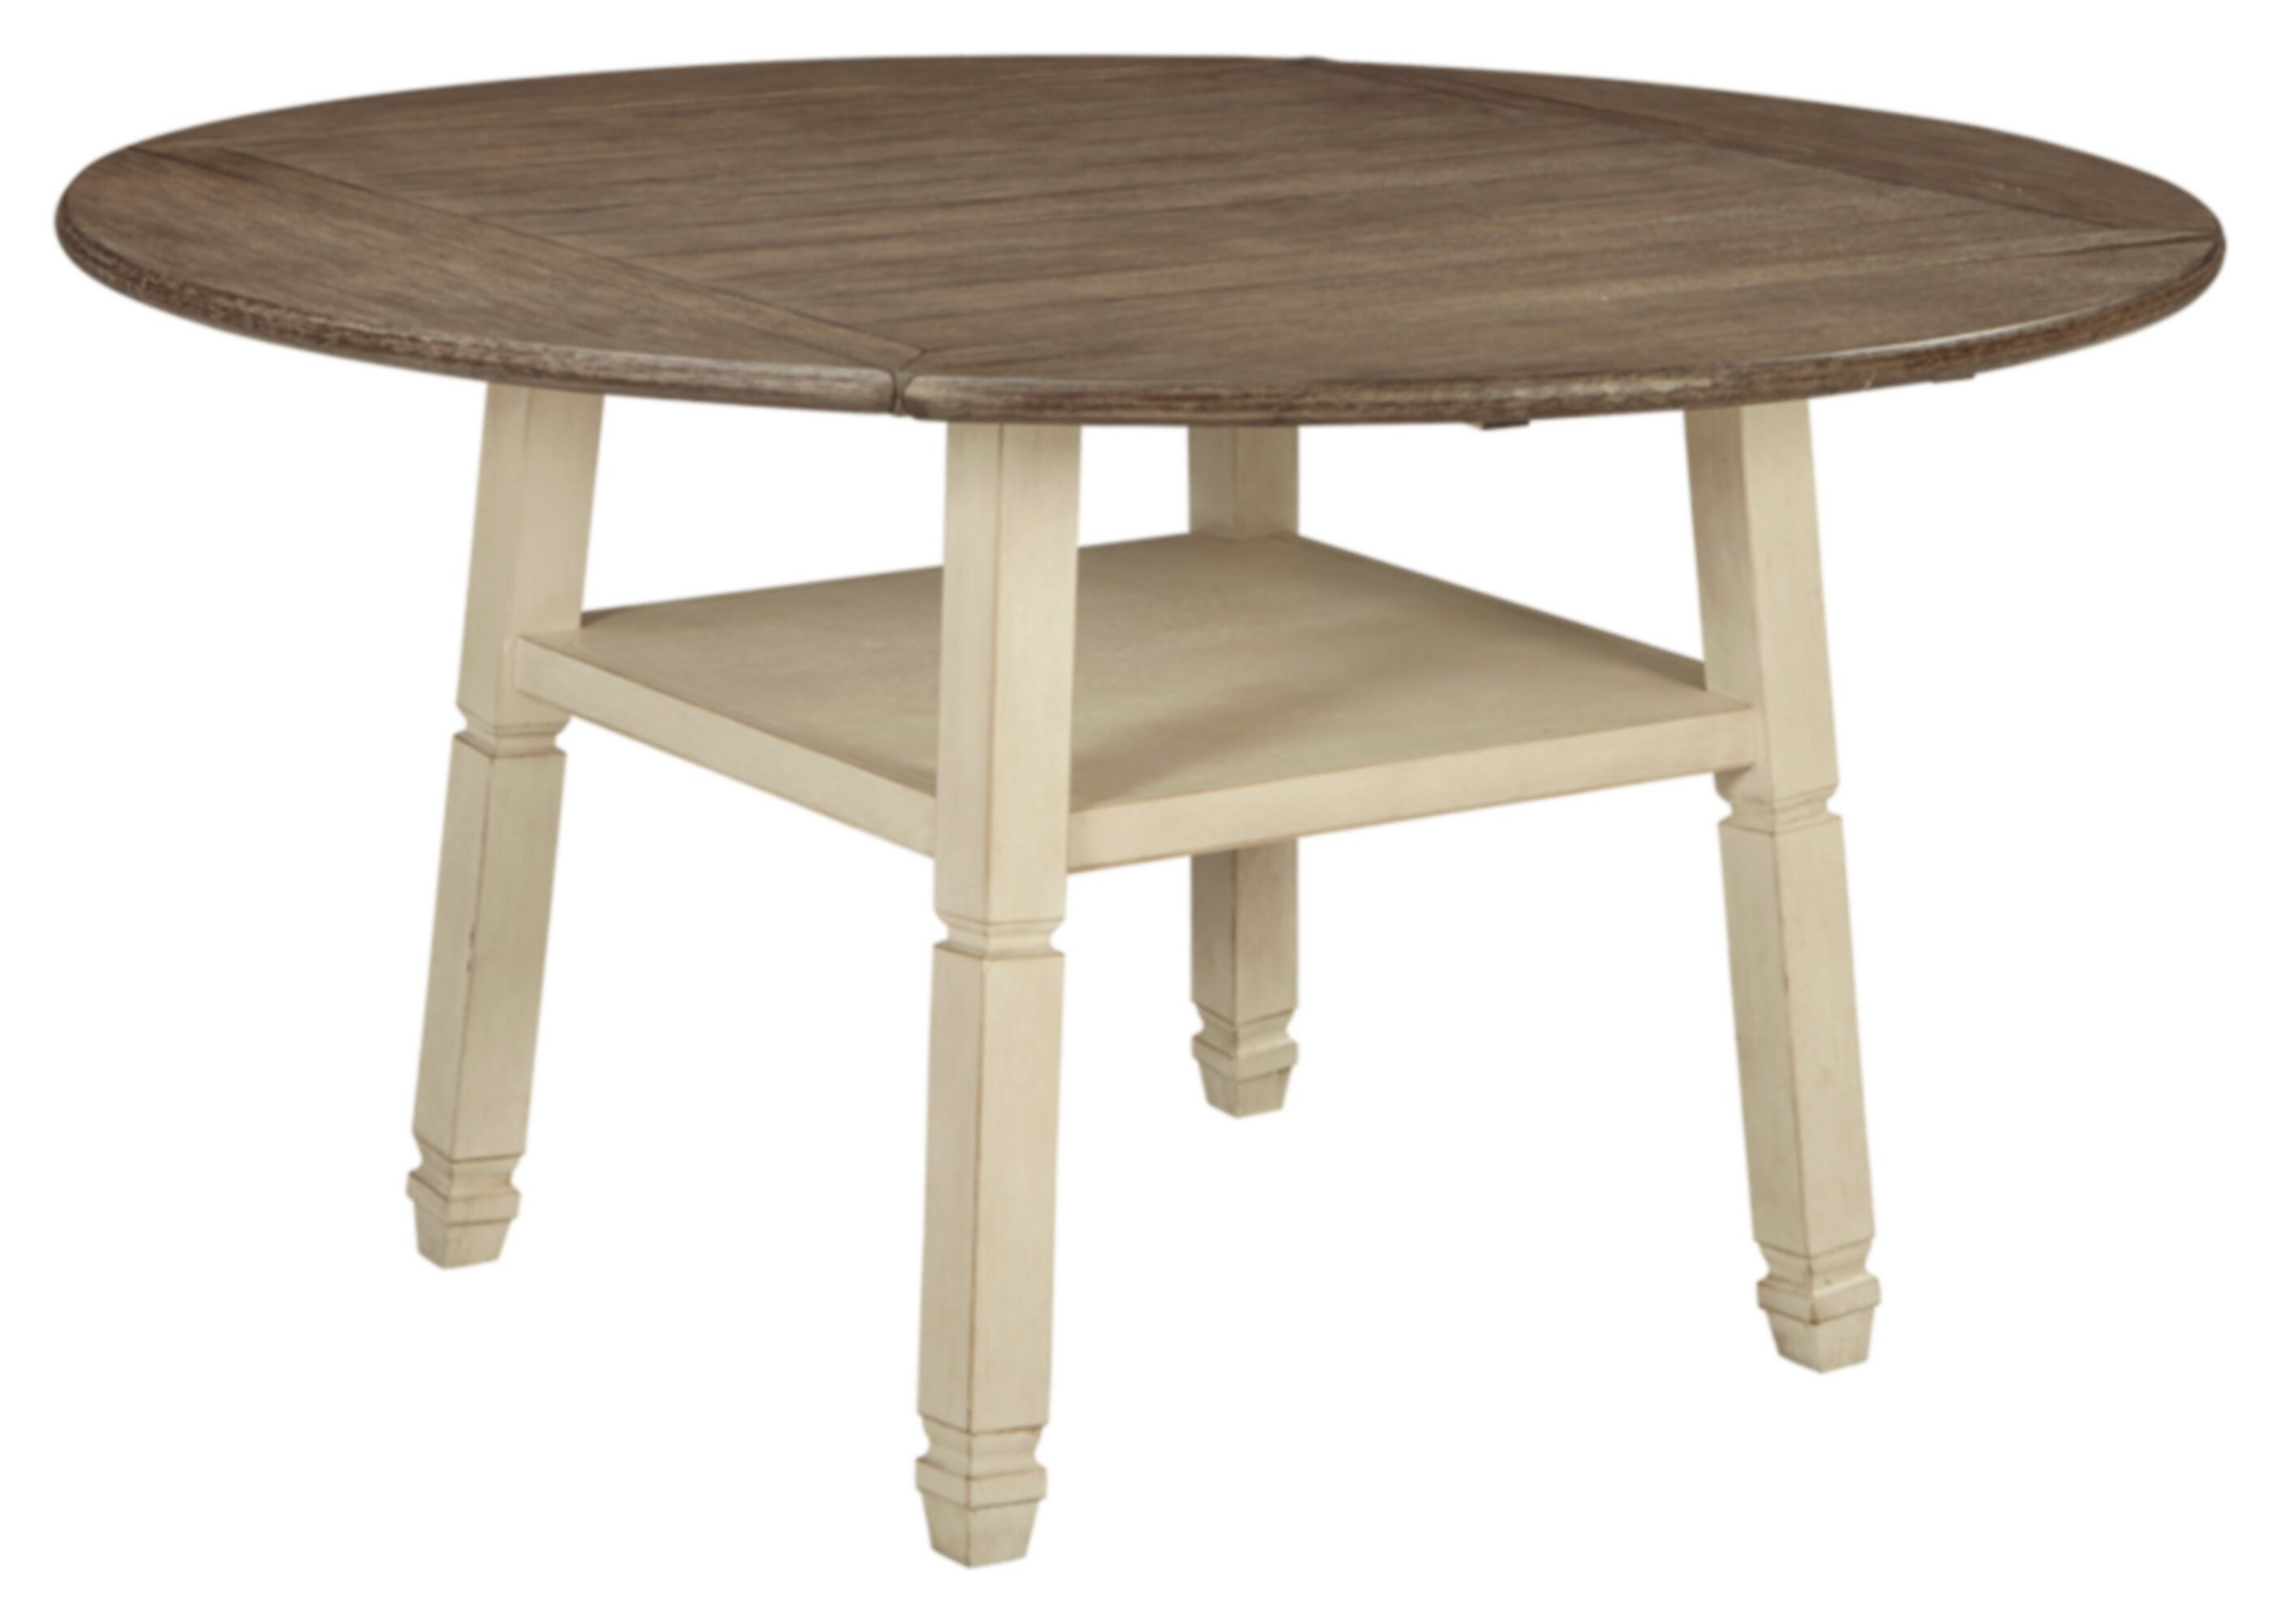 Lark Manor Alsace Counter Height Drop Leaf Dining Table | Wayfair